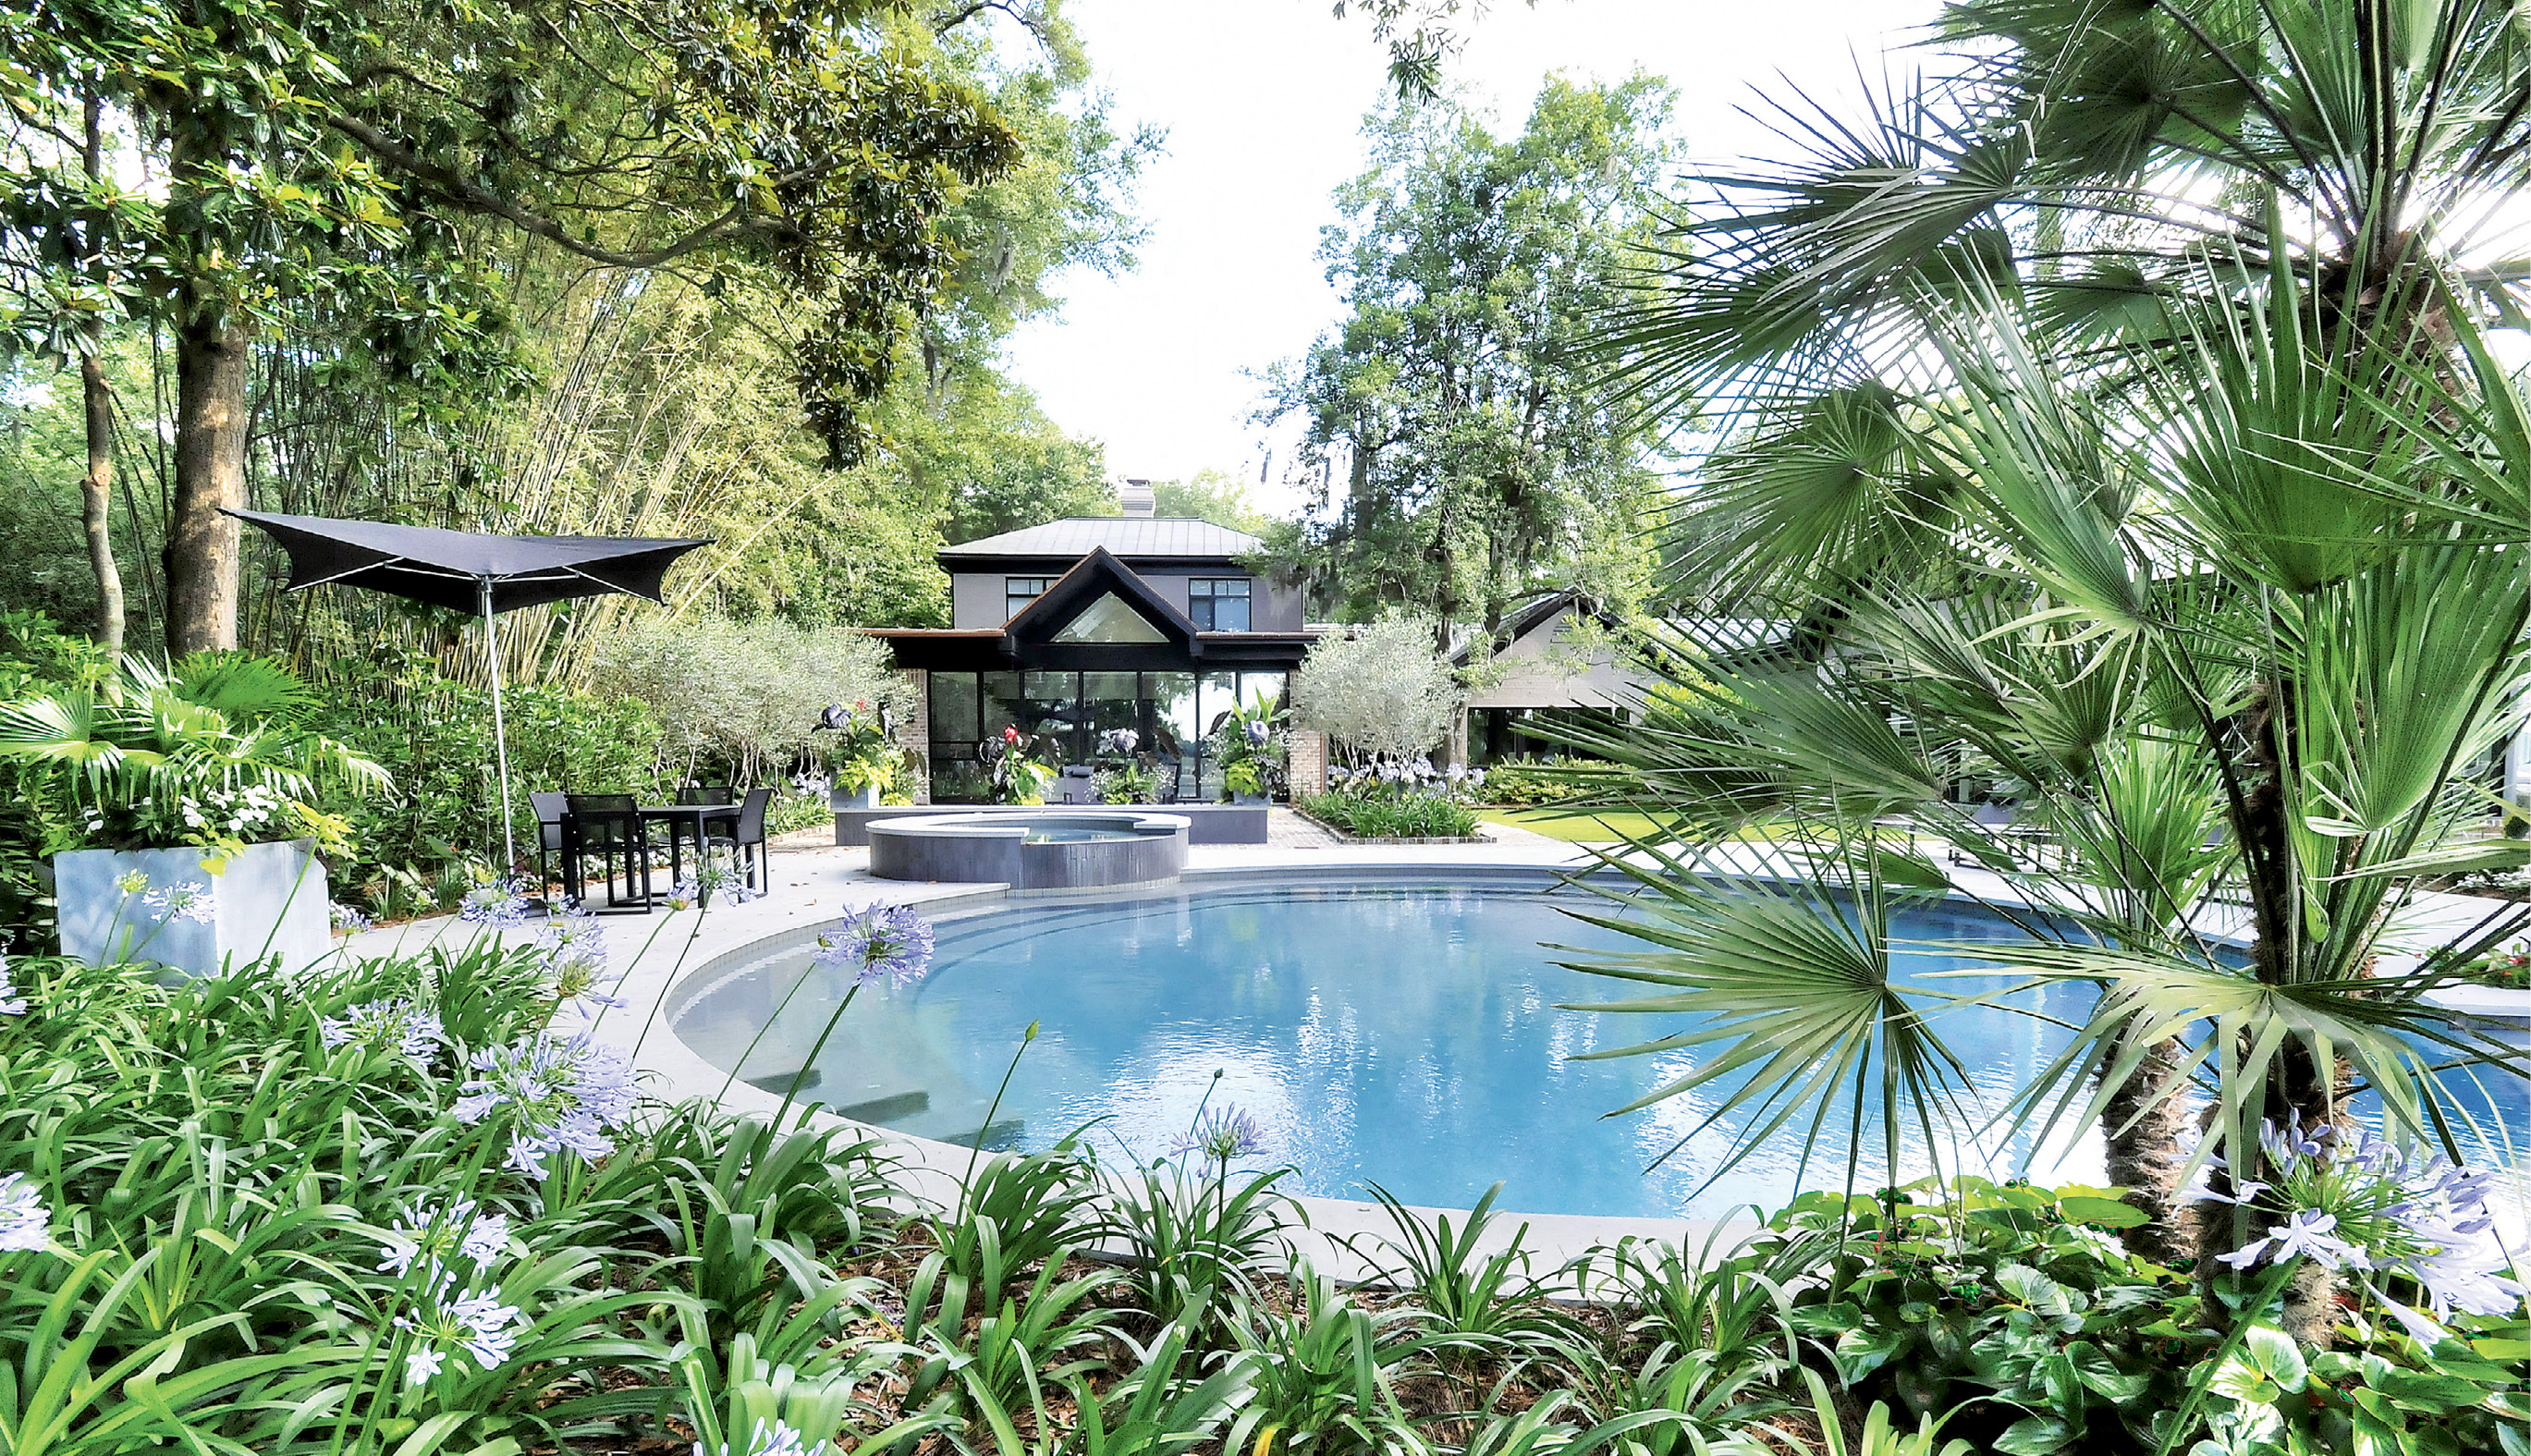 Round About: The pool's graceful shape is echoed by a stone patio, which Wertimer further defined with dwarf palms and climbing fig.